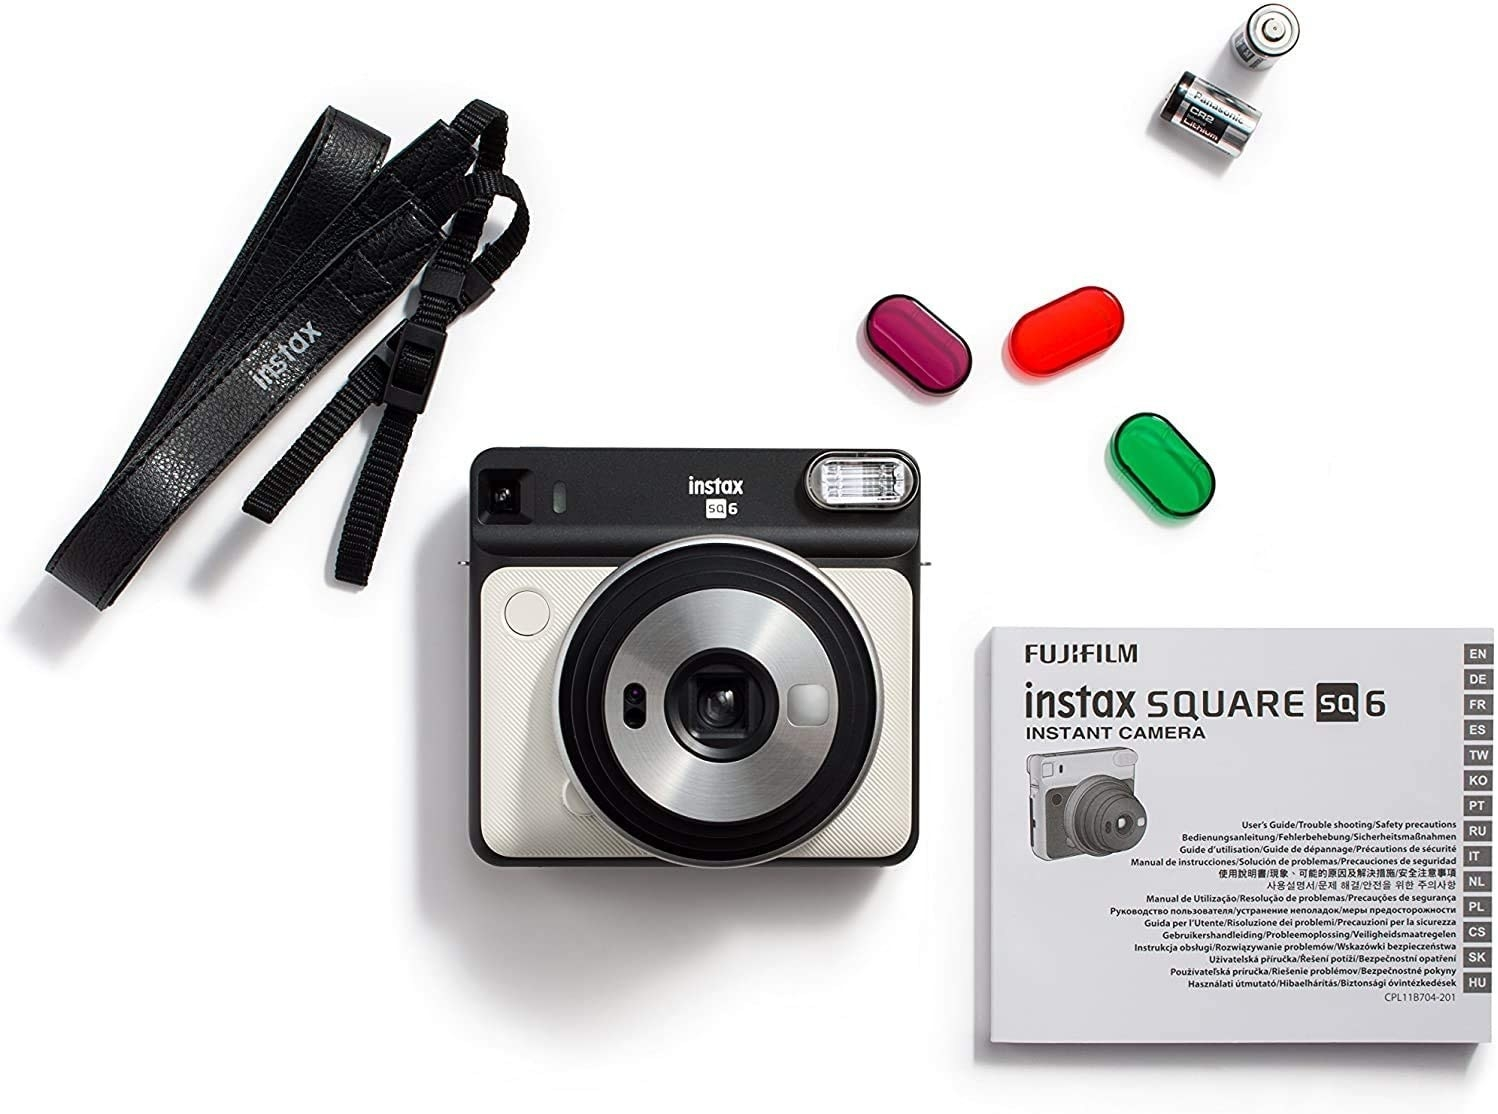 A small instant camera on a plain background with a strap and manual booklet beside it